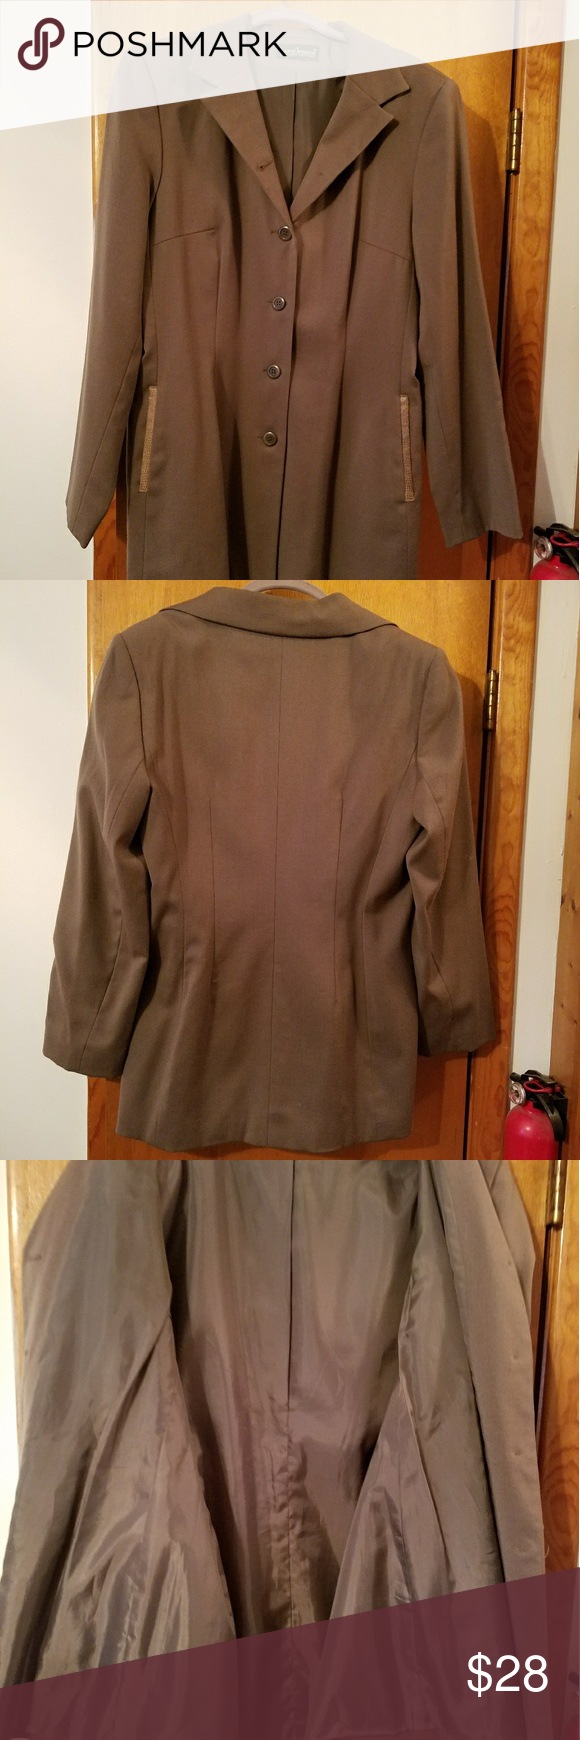 Blazer Olive green blazer with snake like design pocket in great condition.  Good for office work or with a pair of jeans and heels for a night on the town. Jackets & Coats Blazers